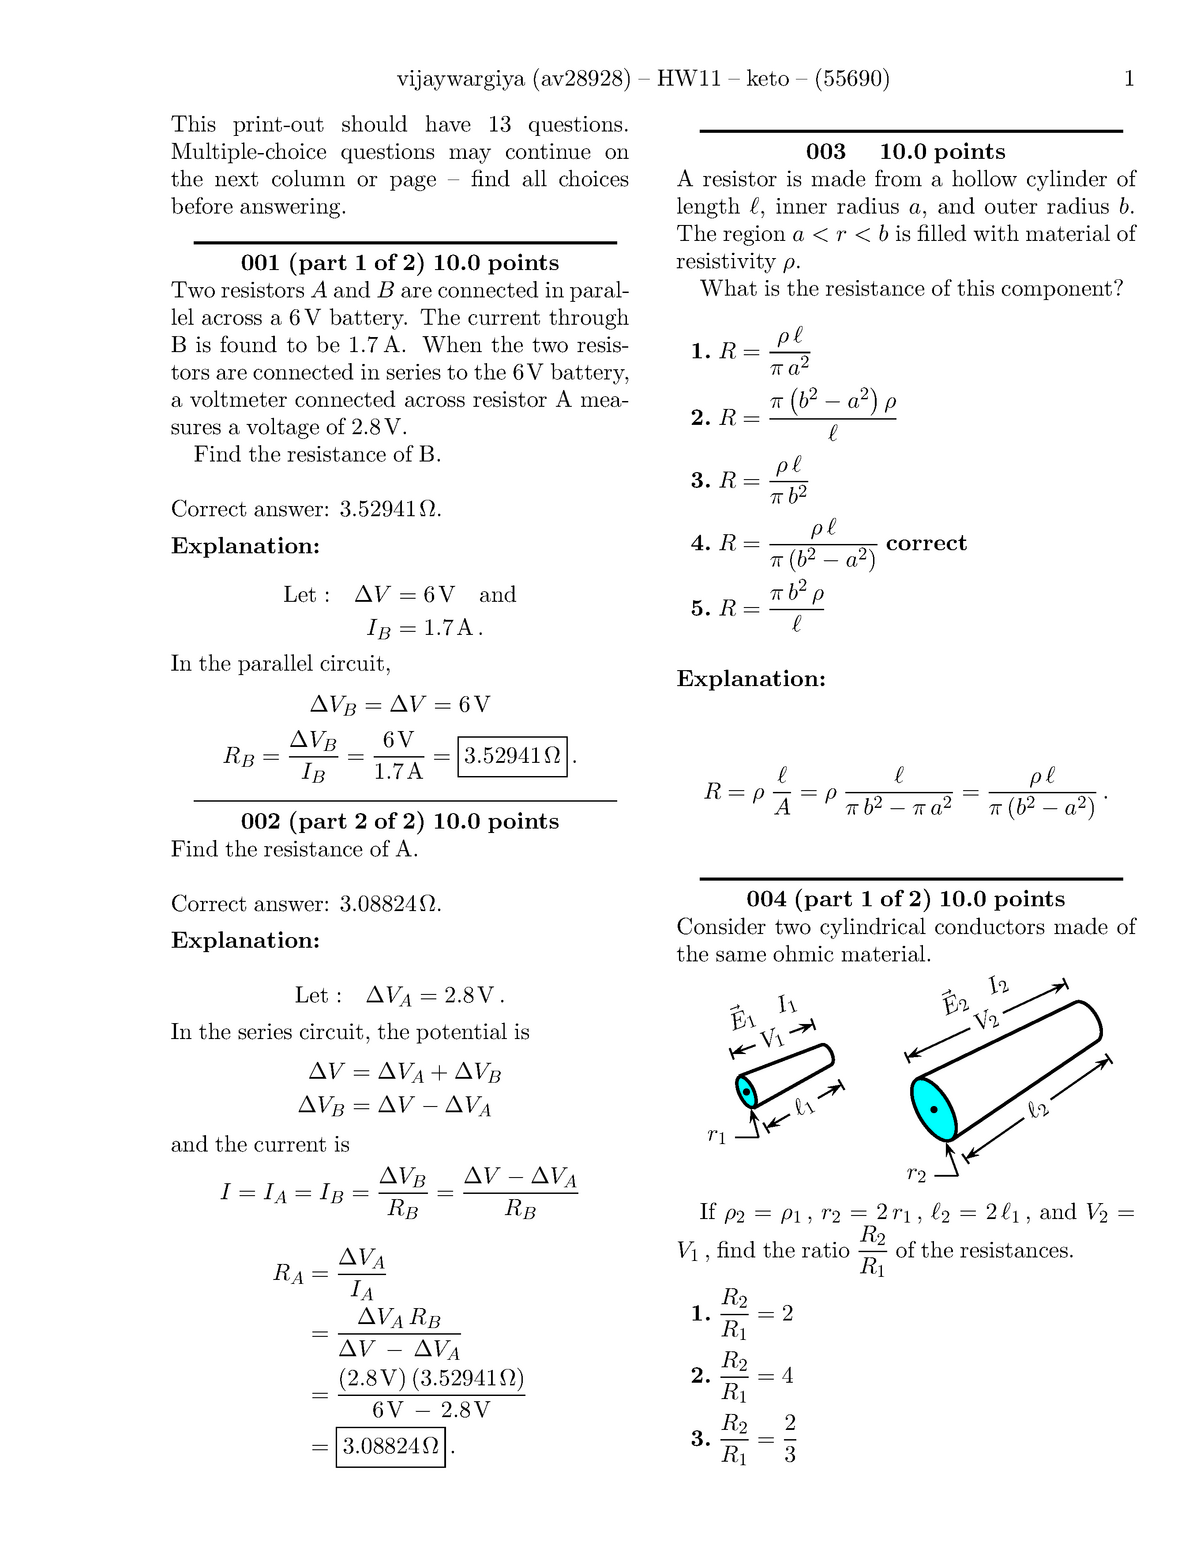 Seminar Assignments 11-20 - PHY 316: Electricity and Magnetism - StuDocu